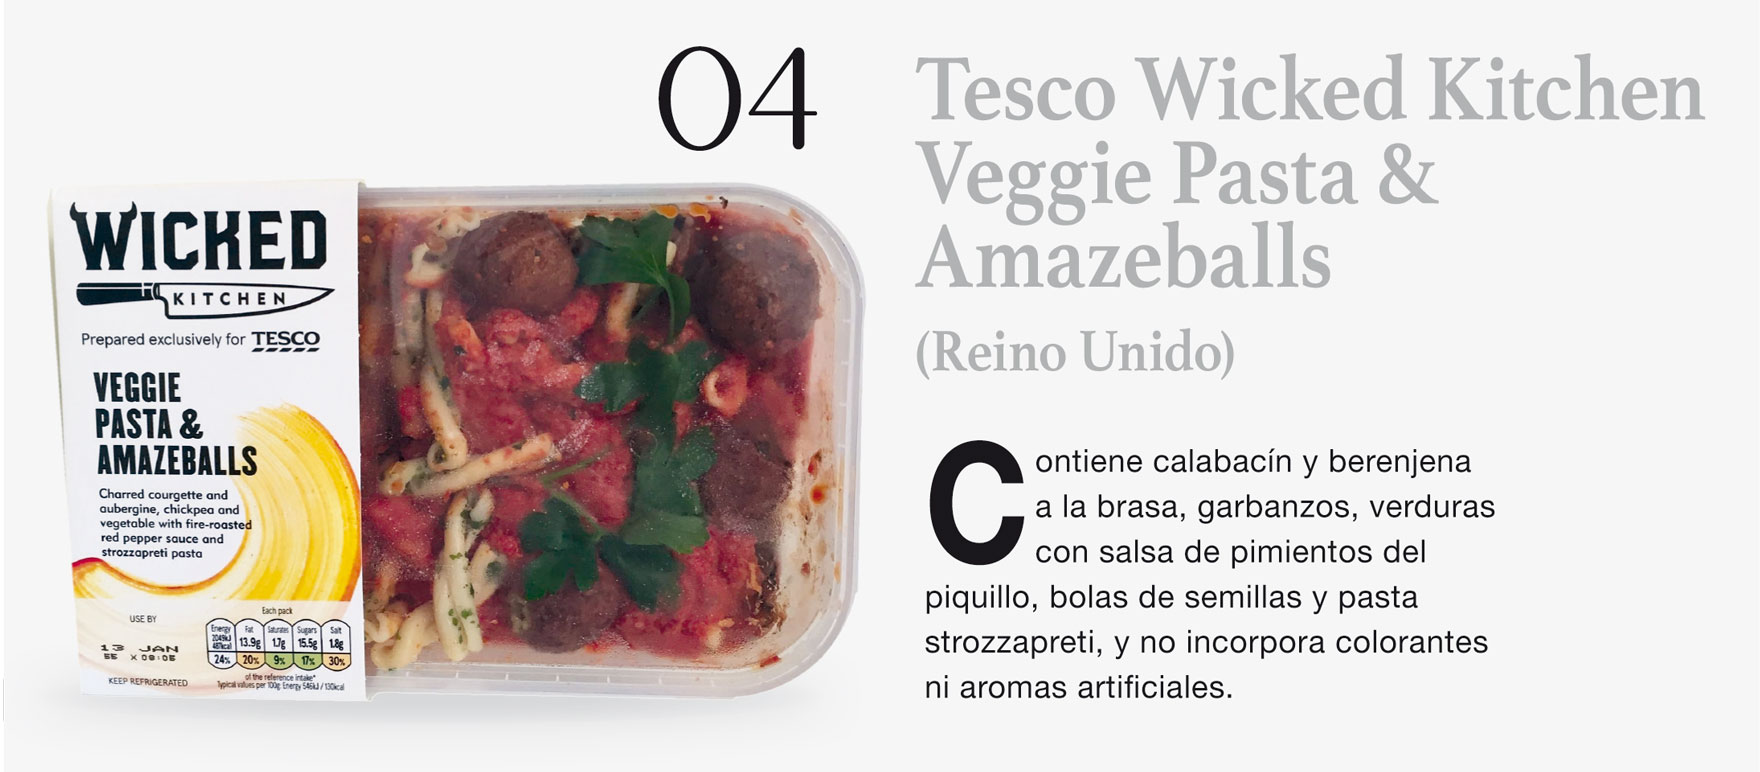 Tesco Wicked Kitchen Veggie Pasta & Amazeballs (Reino Unido)